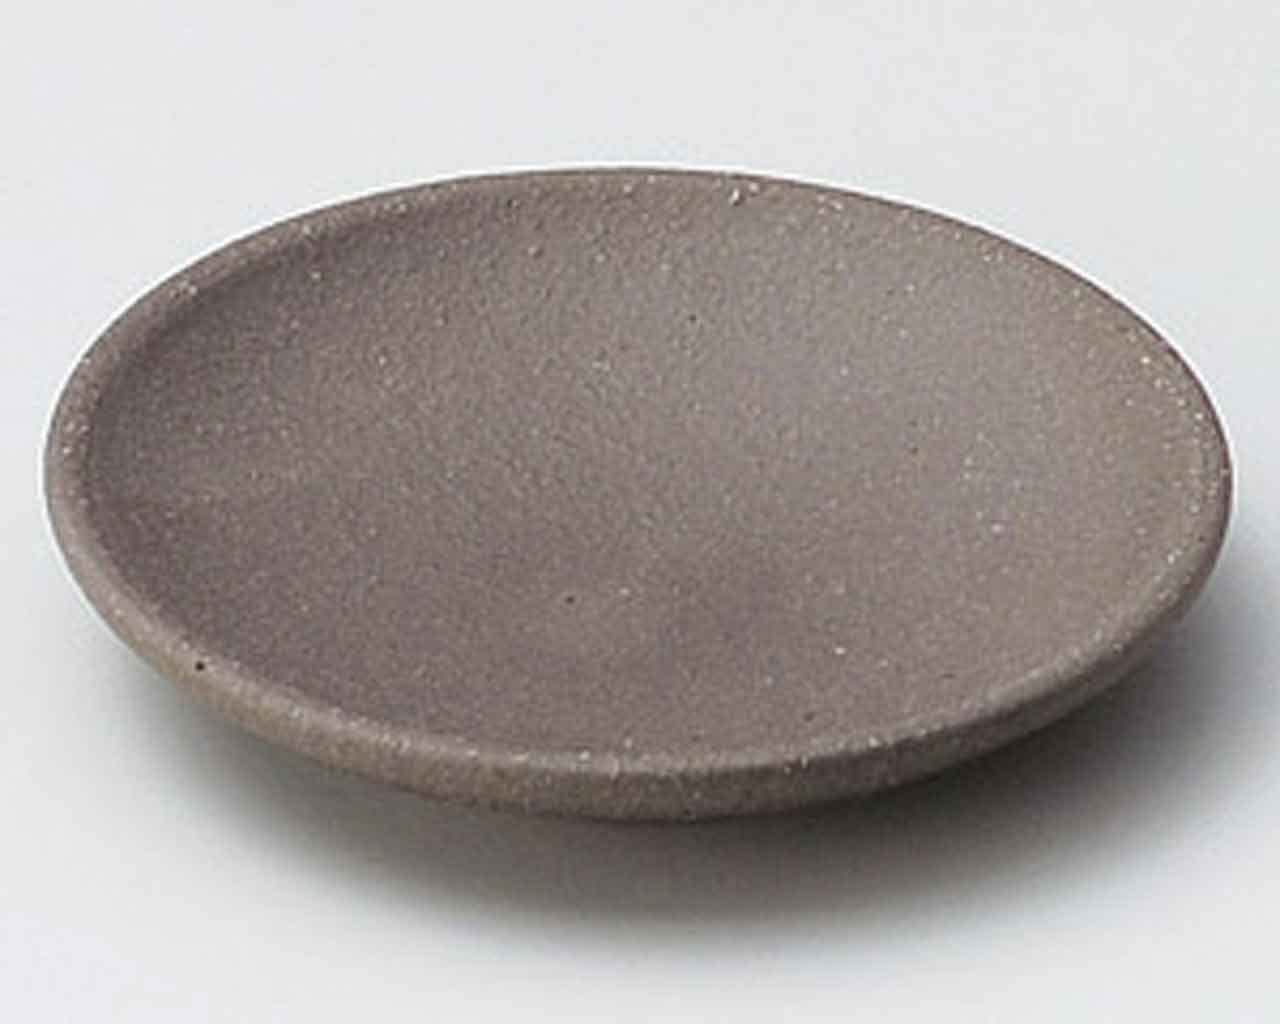 Kokutoh 4.5inch Small Plate Brown Ceramic Made in Japan